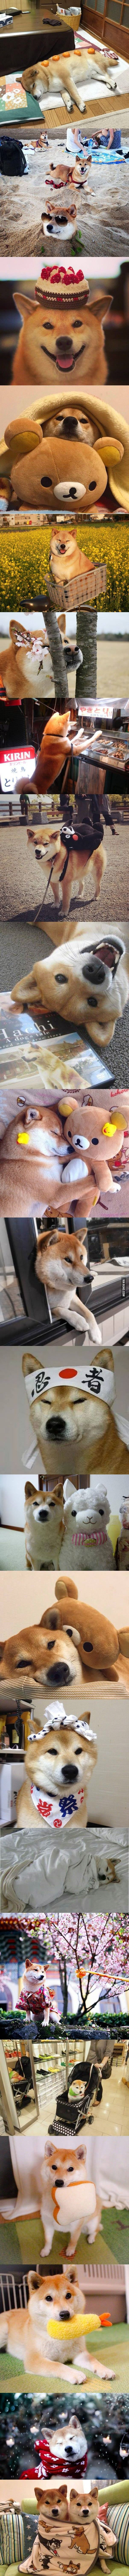 The Doge meme has brought joy to millions of hearts - and Shiba Inu lovers :)